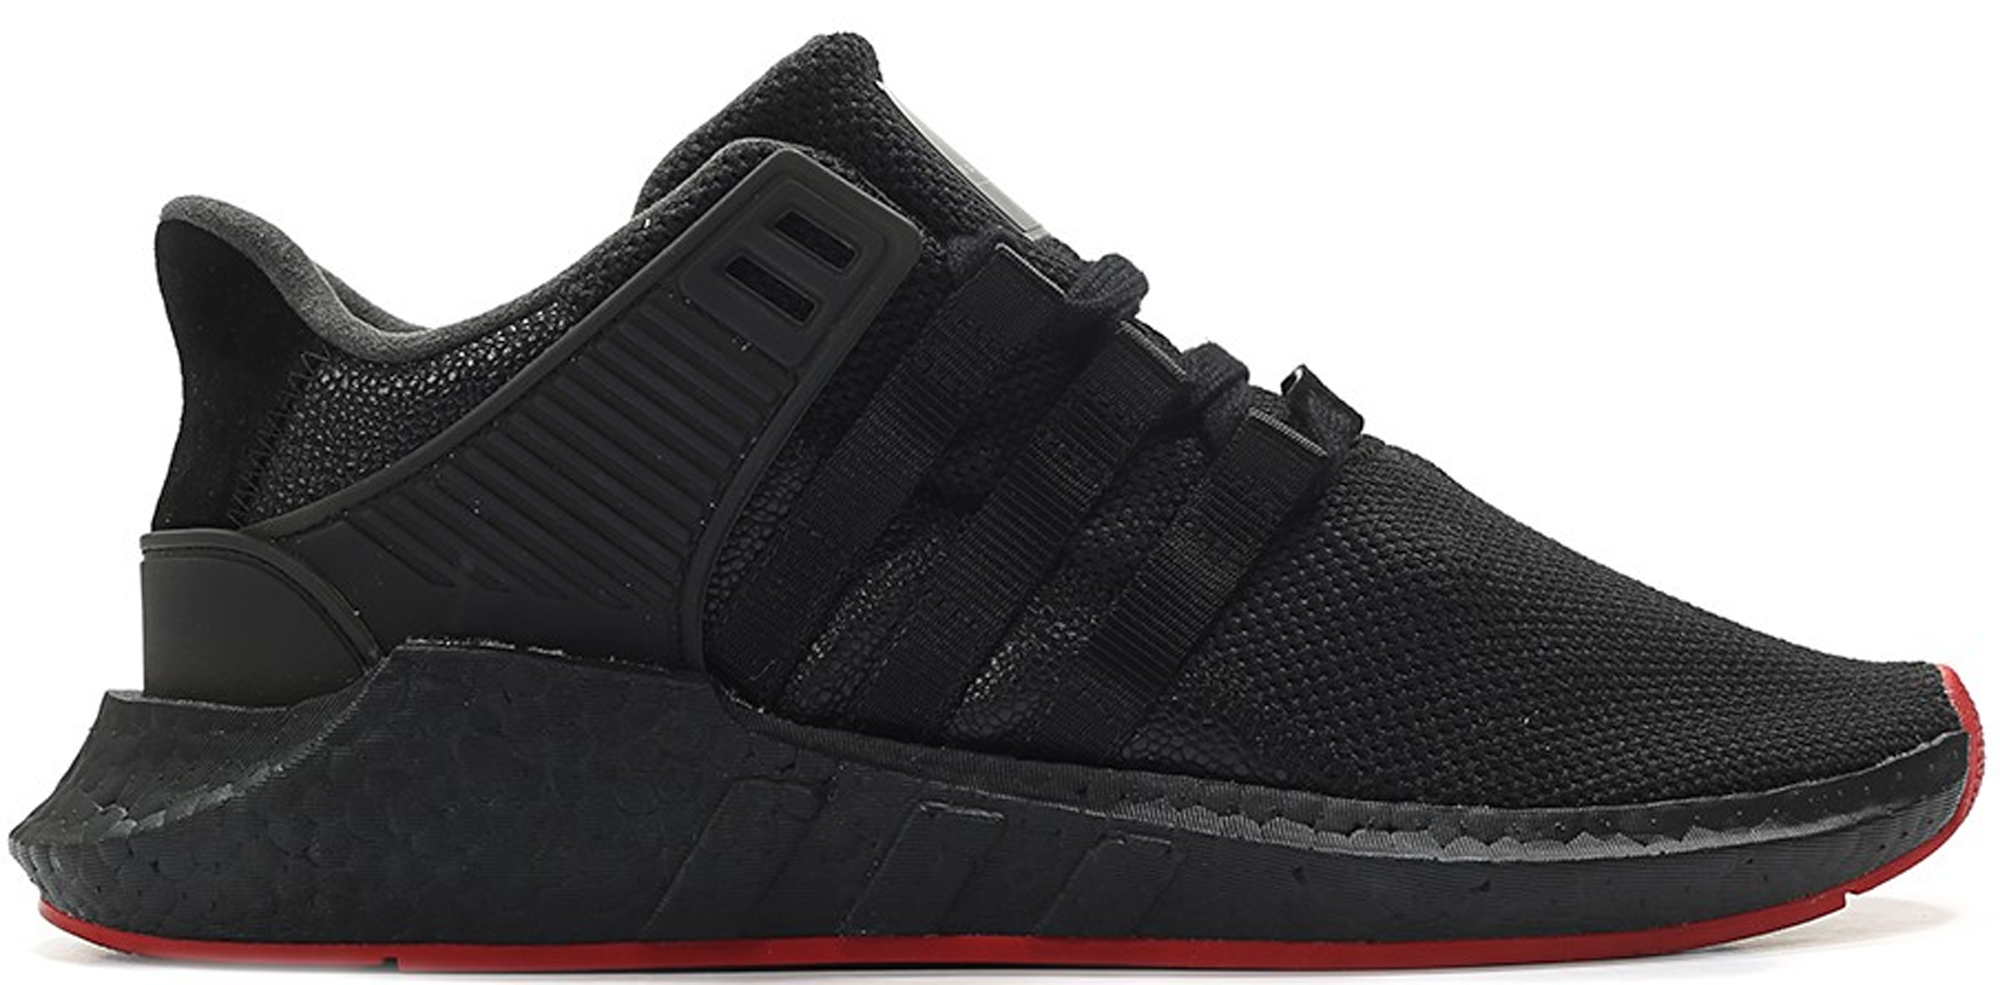 adidas EQT Support 93/17 Red Carpet Pack Black